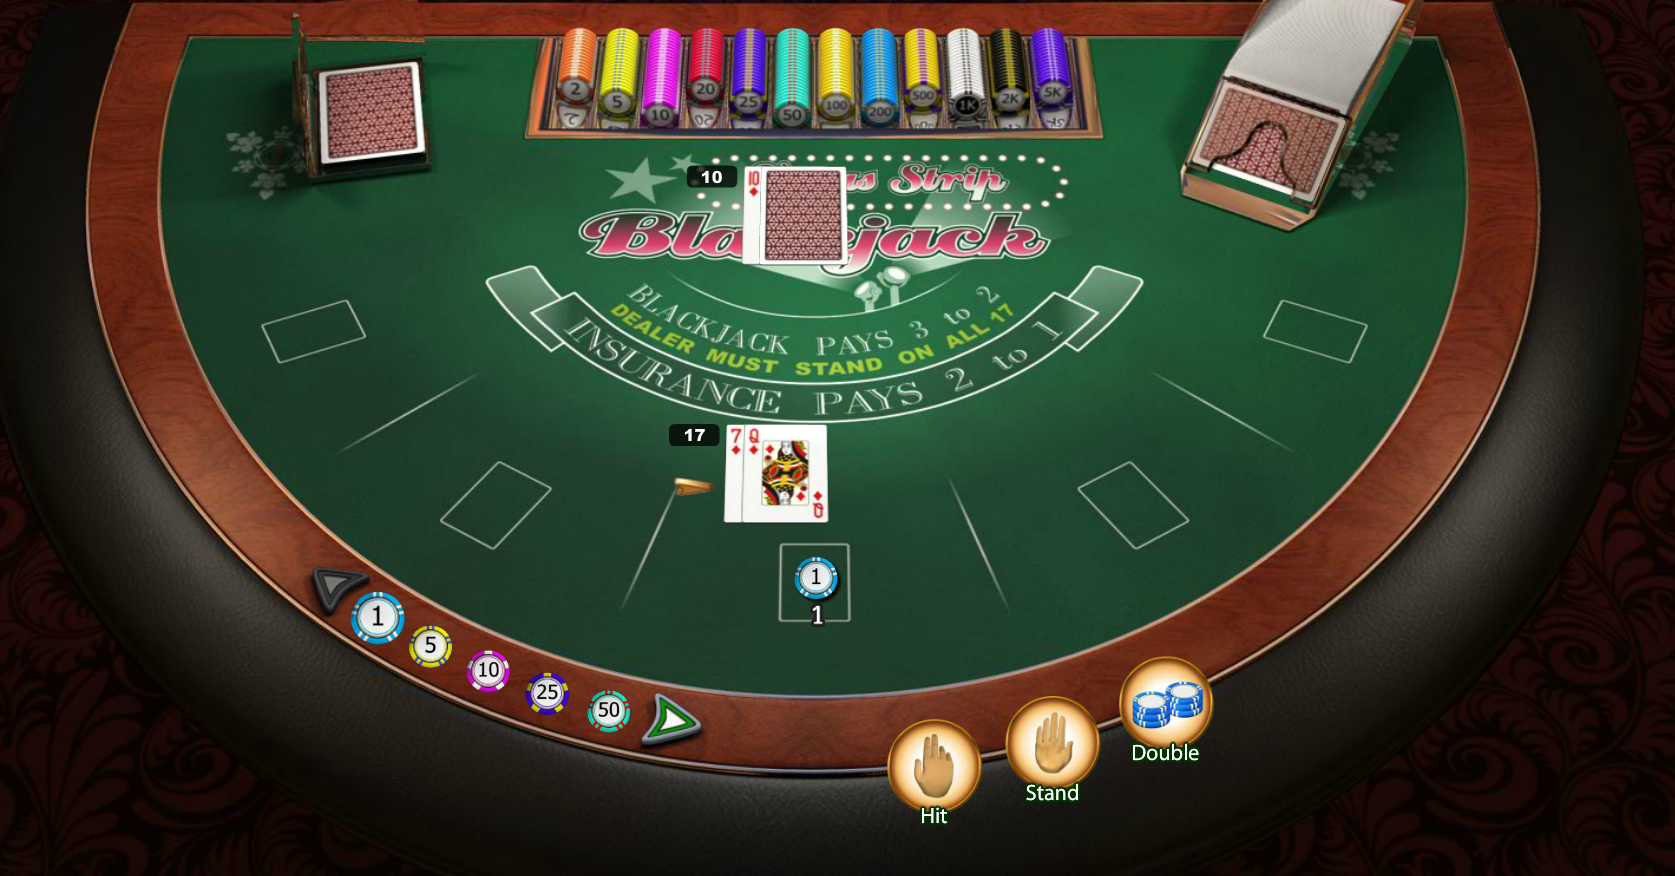 Vegas casinos with $5 blackjack